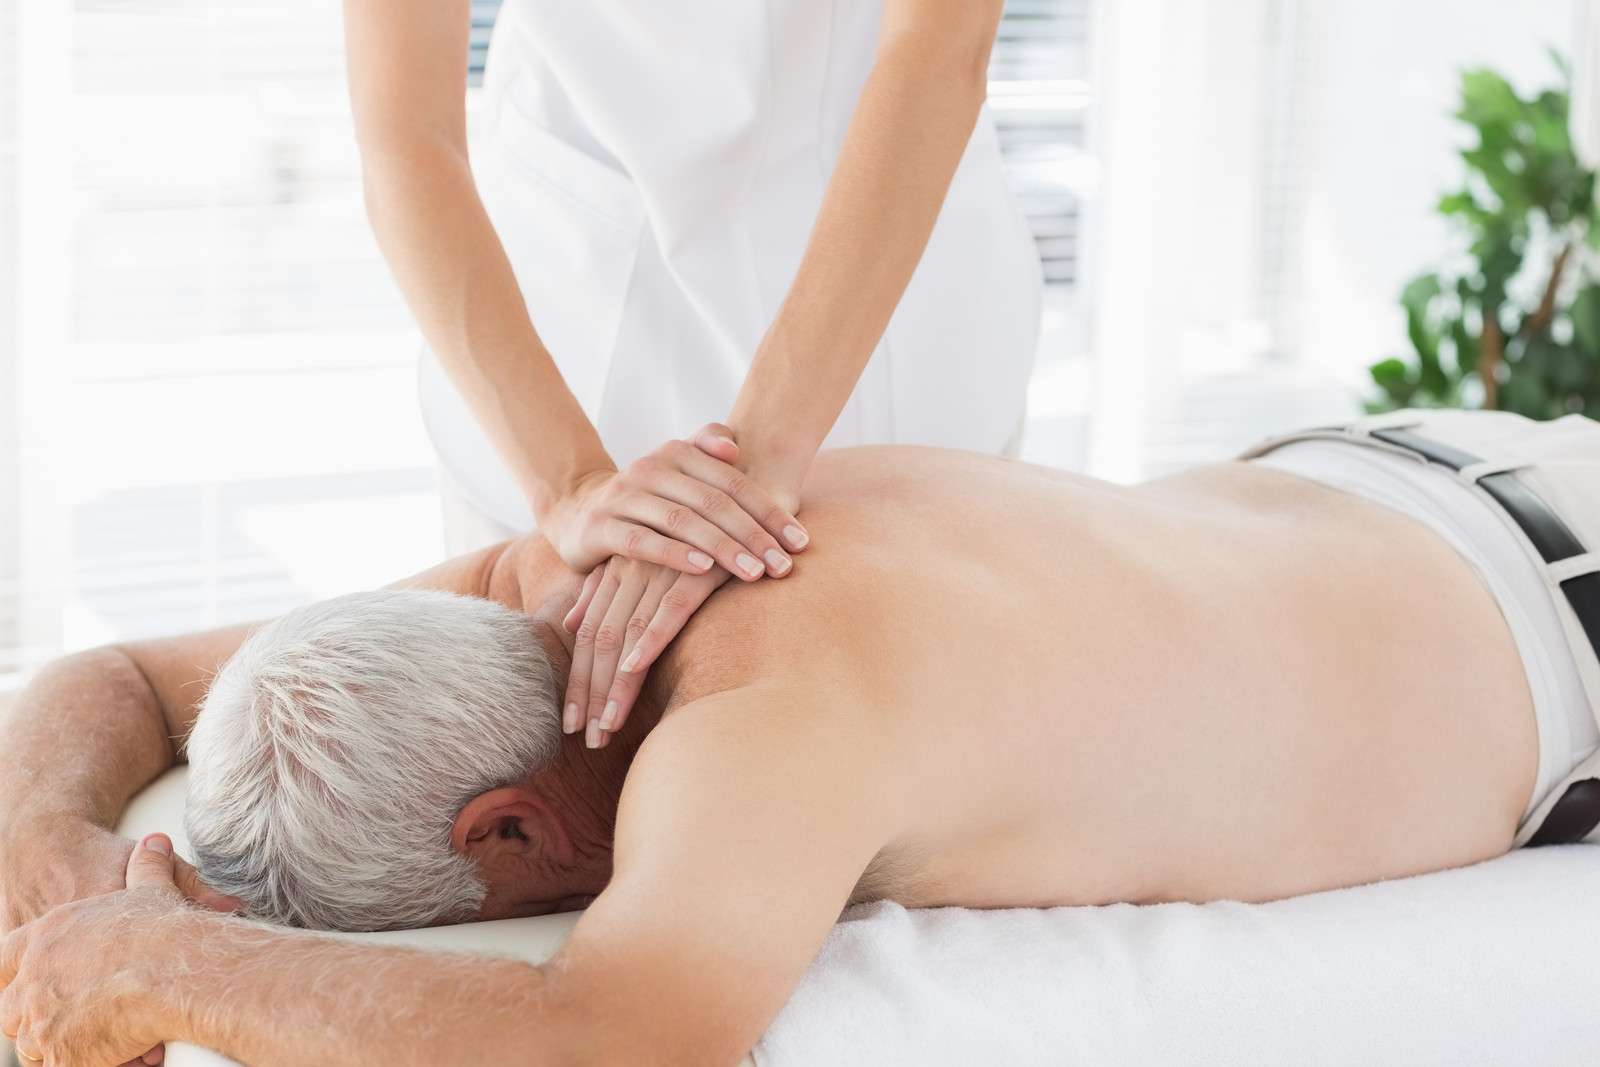 Senior man laying face down on a massage table receiving a massage, using pressure around the neck and shoulders